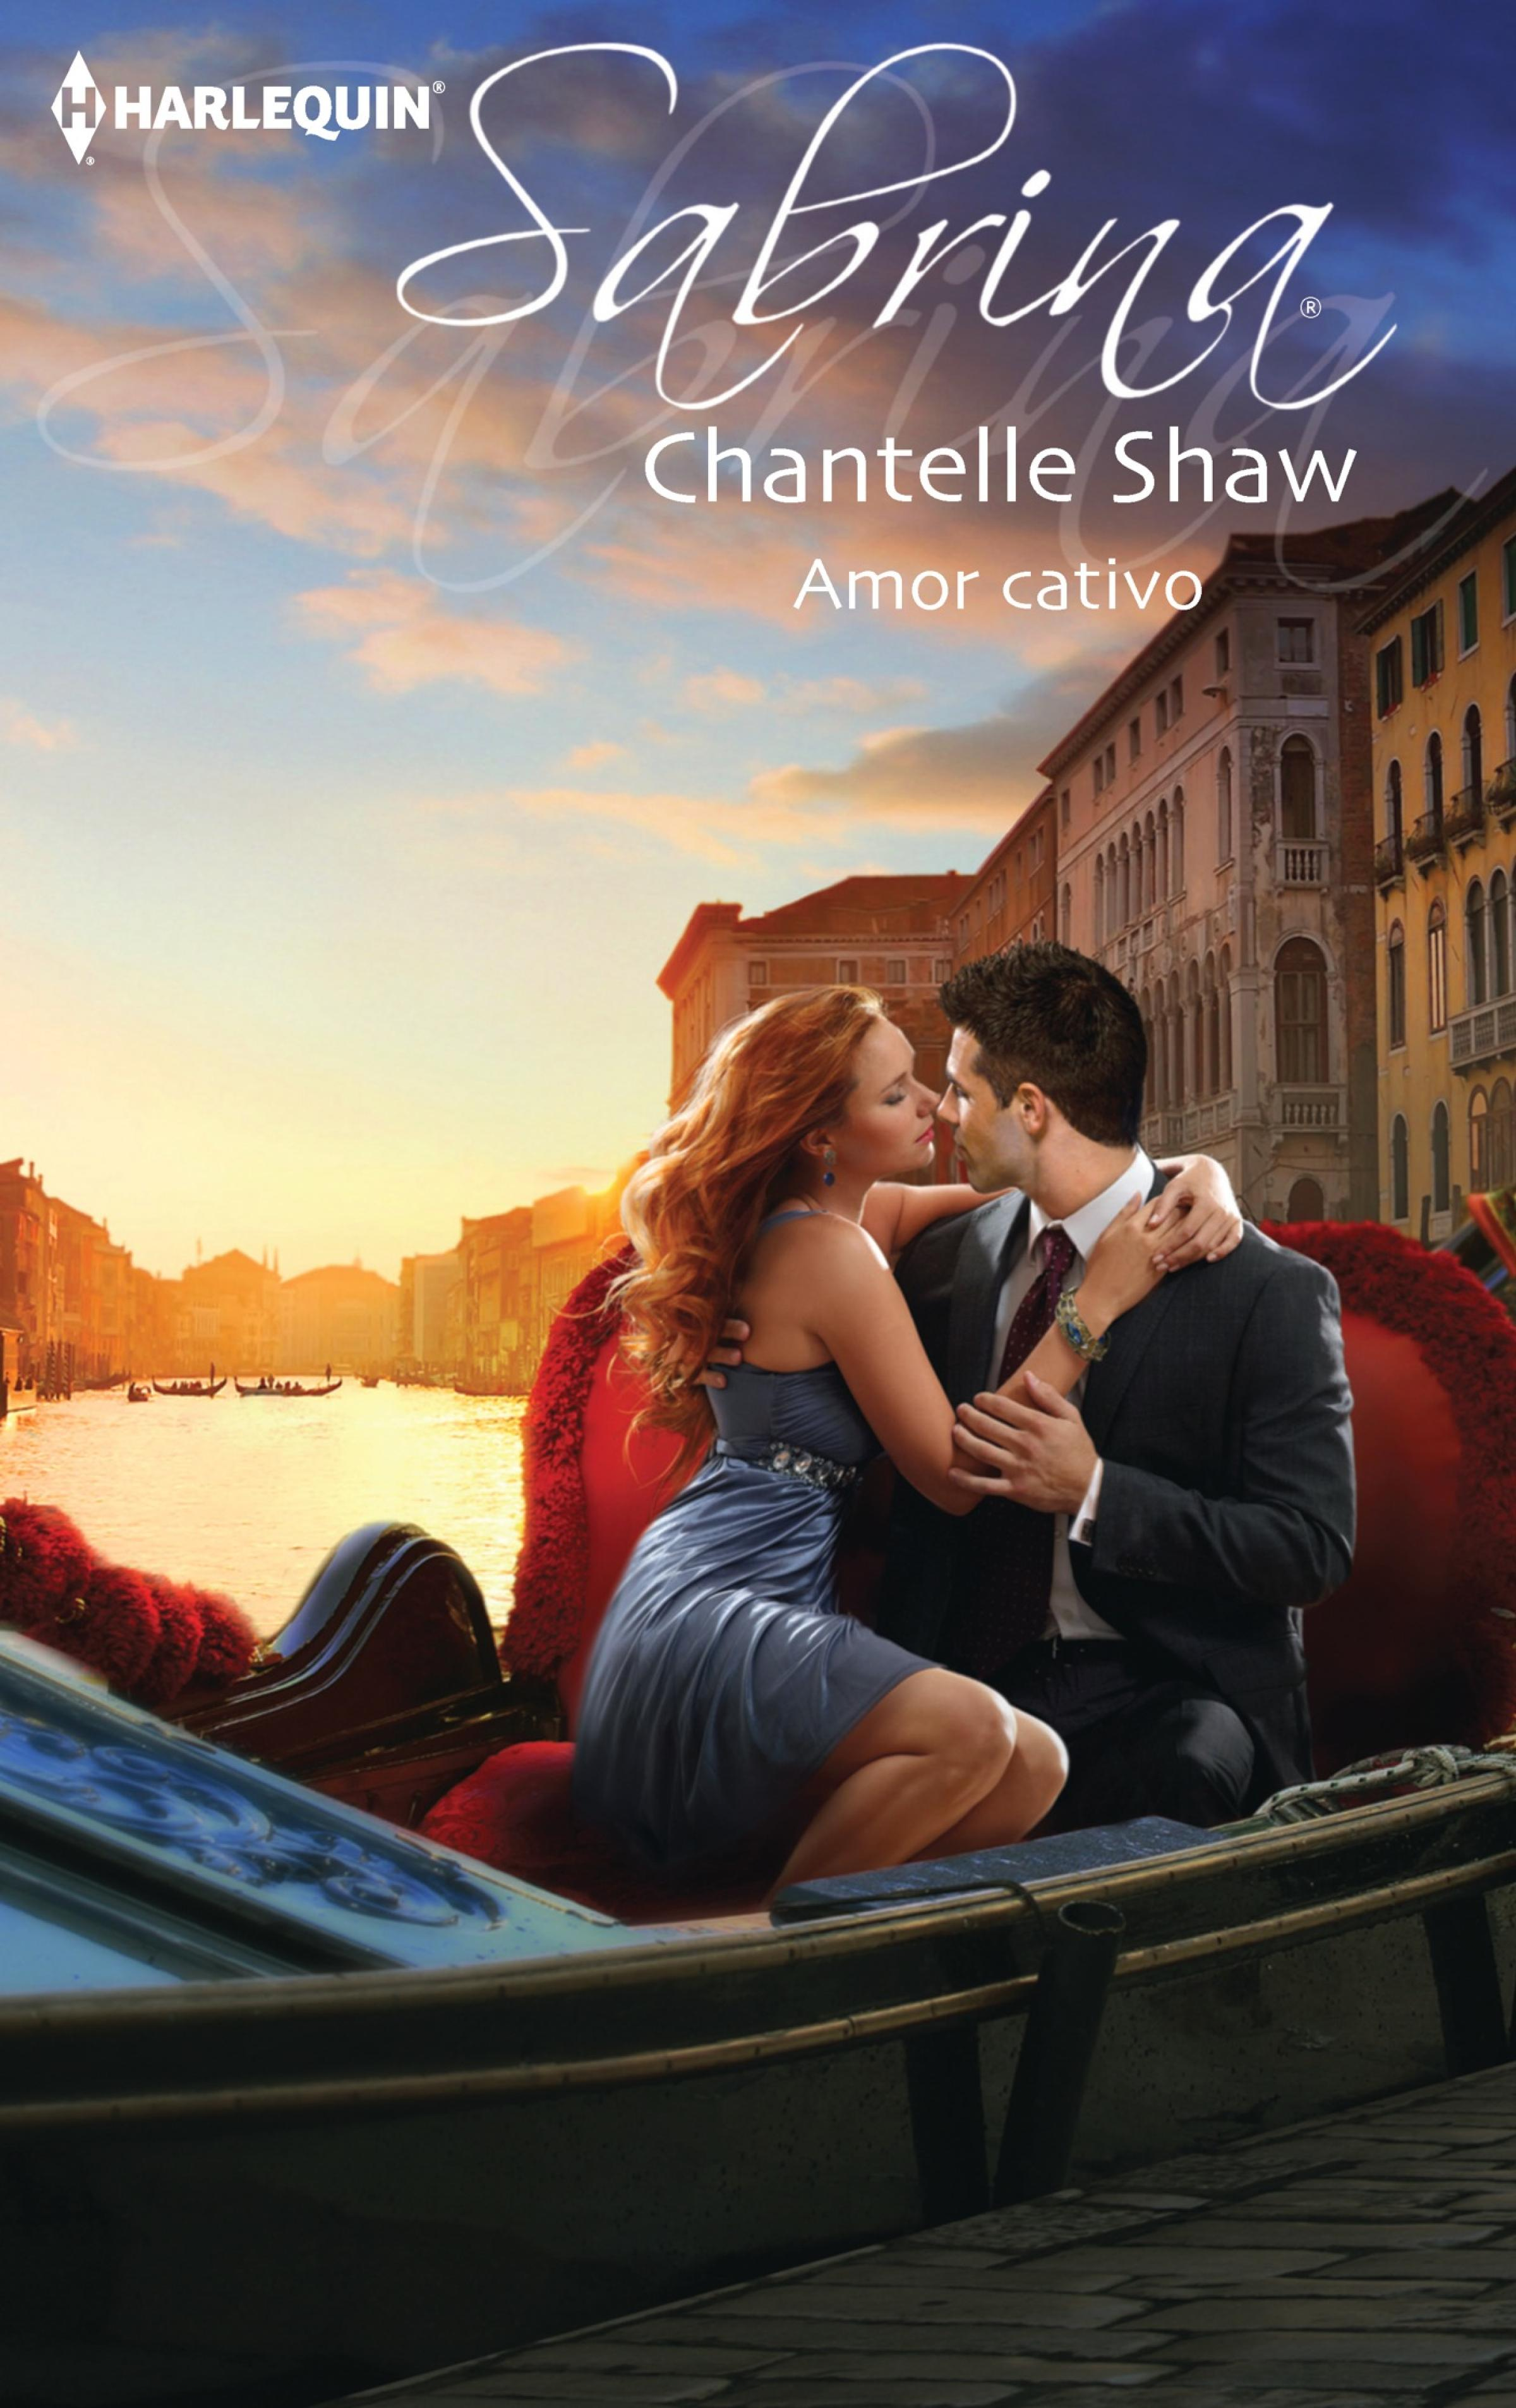 Chantelle Shaw Amor cativo chantelle shaw untouched until marriage